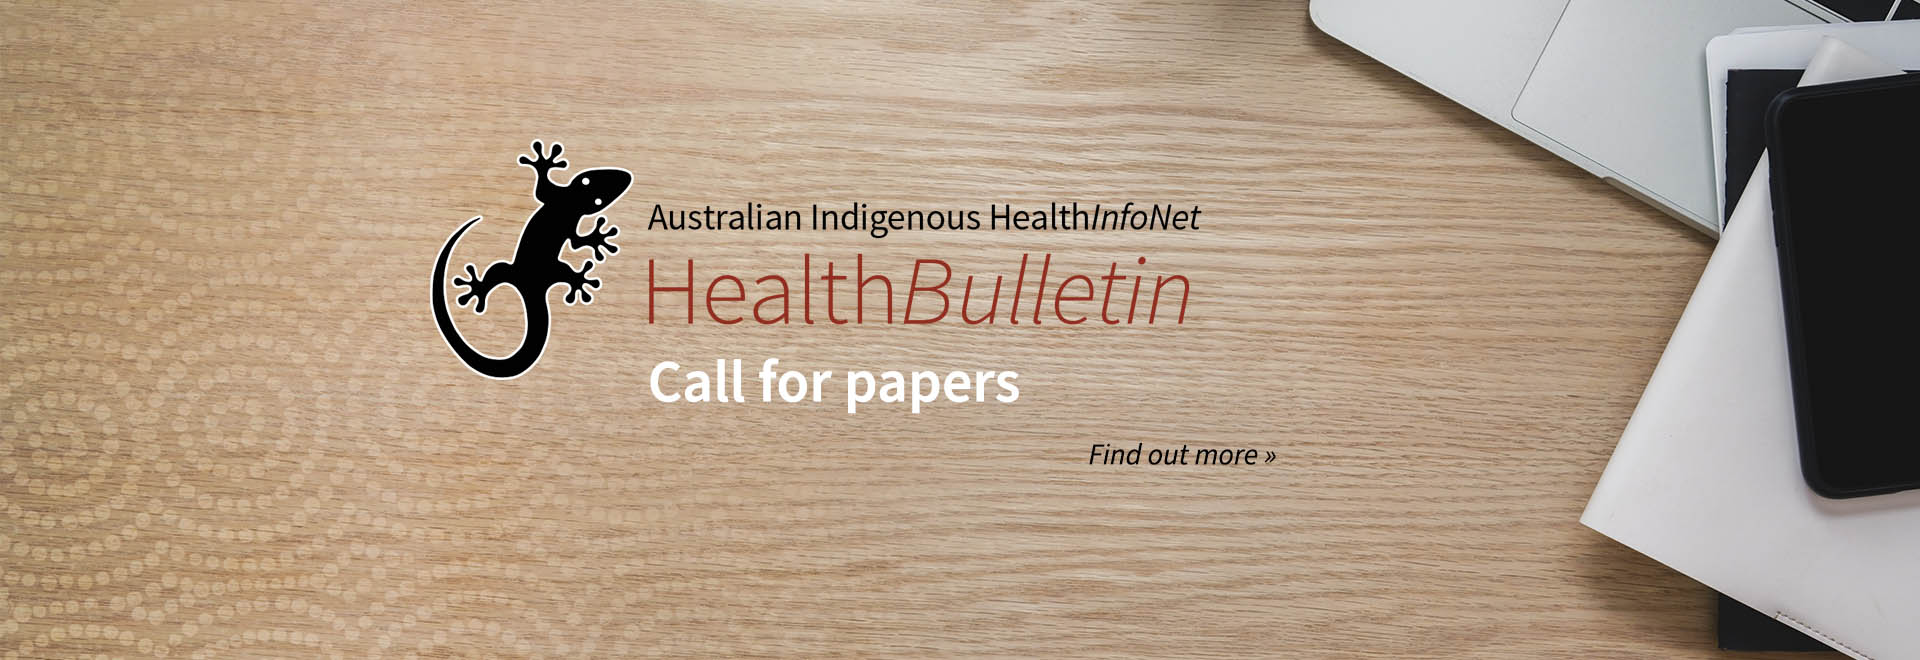 HealthBulletin - Call for papers